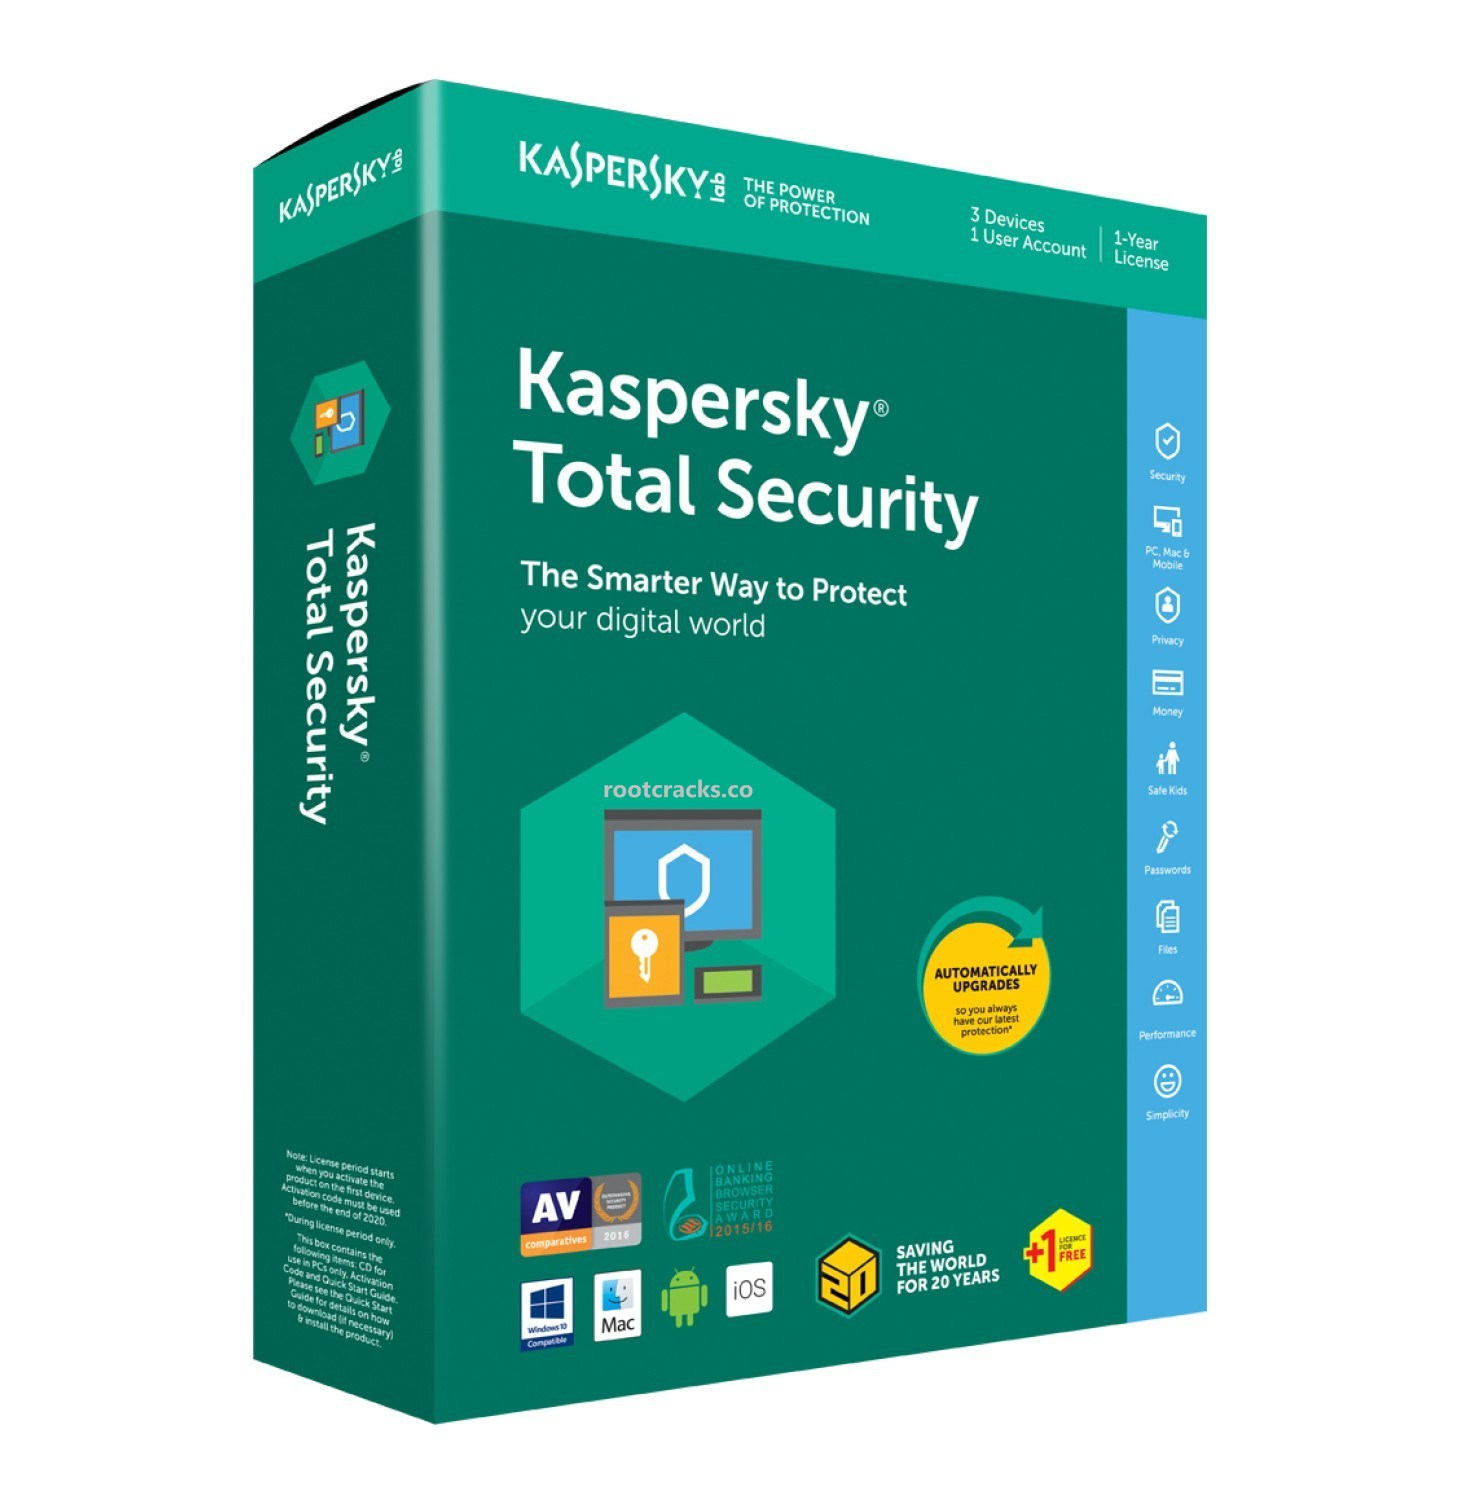 Kaspersky Total Security 2020 Crack Plus Activation Code Free Download